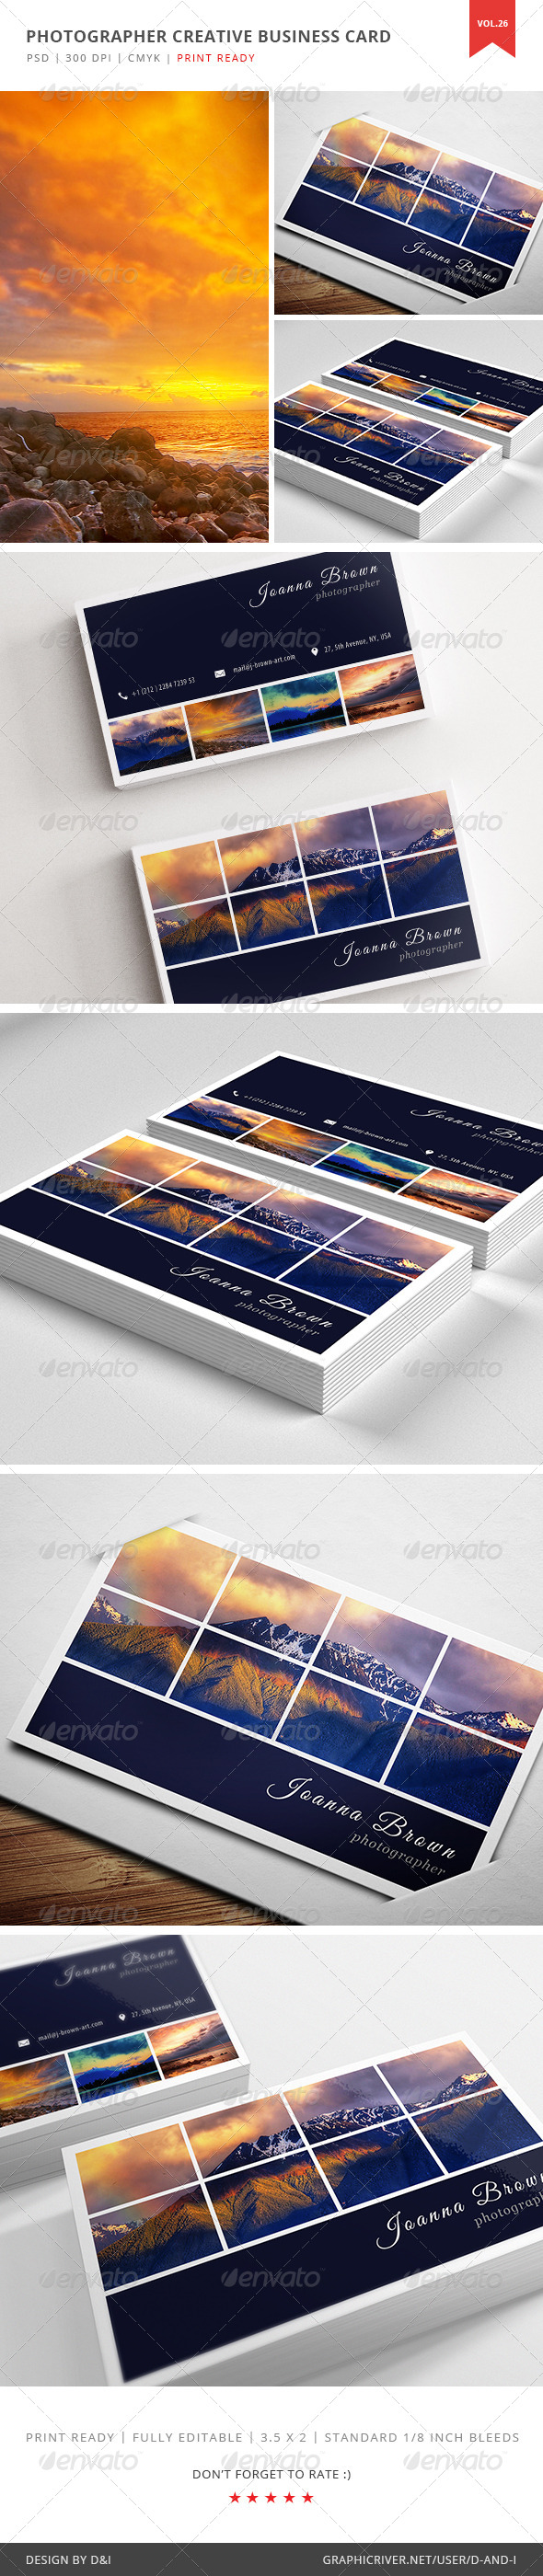 GraphicRiver Photographer Creative Business Card Vol 26 5352314